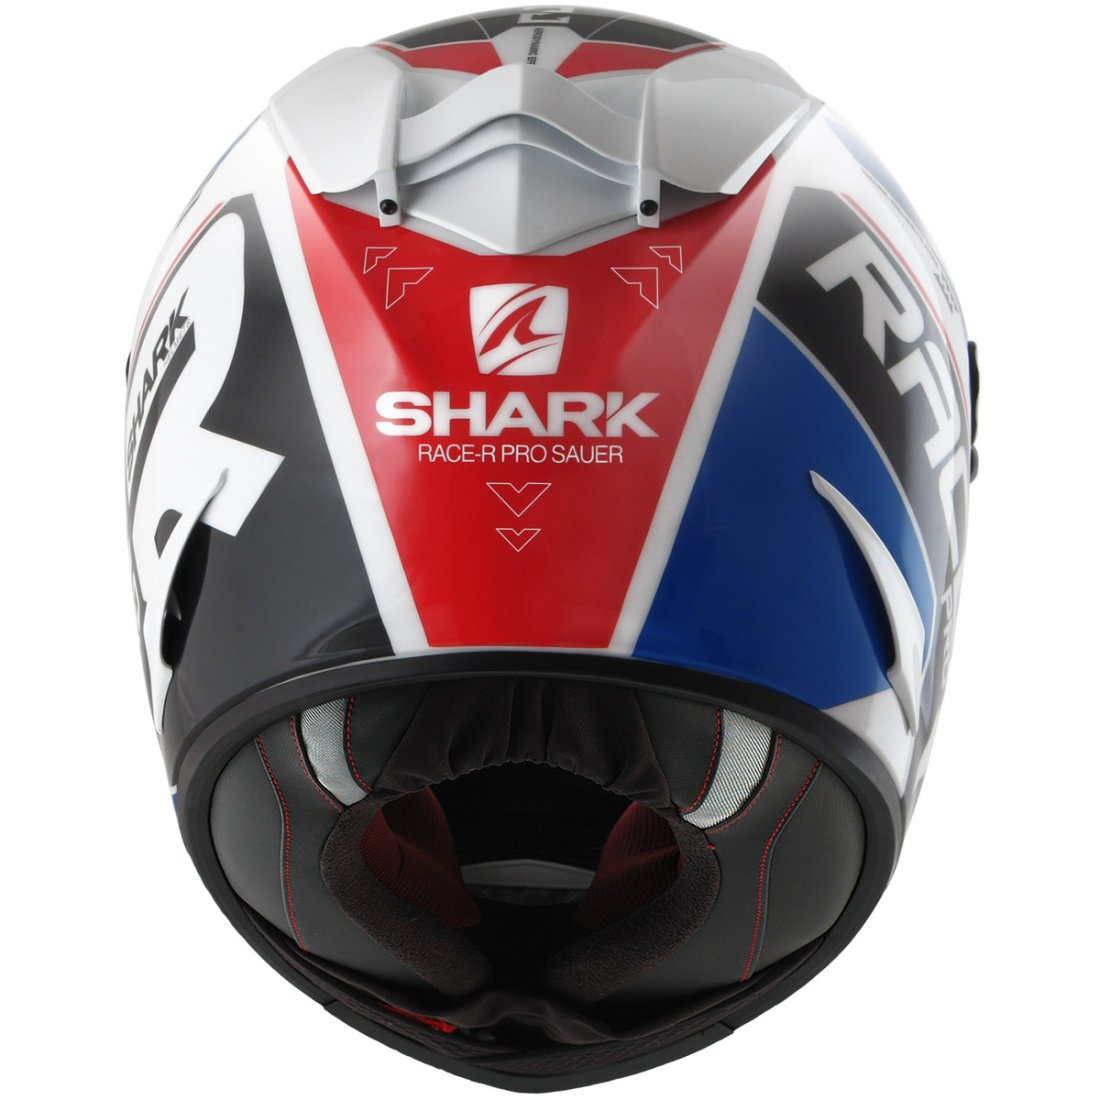 casque shark race r pro sauer white blue red motocard. Black Bedroom Furniture Sets. Home Design Ideas